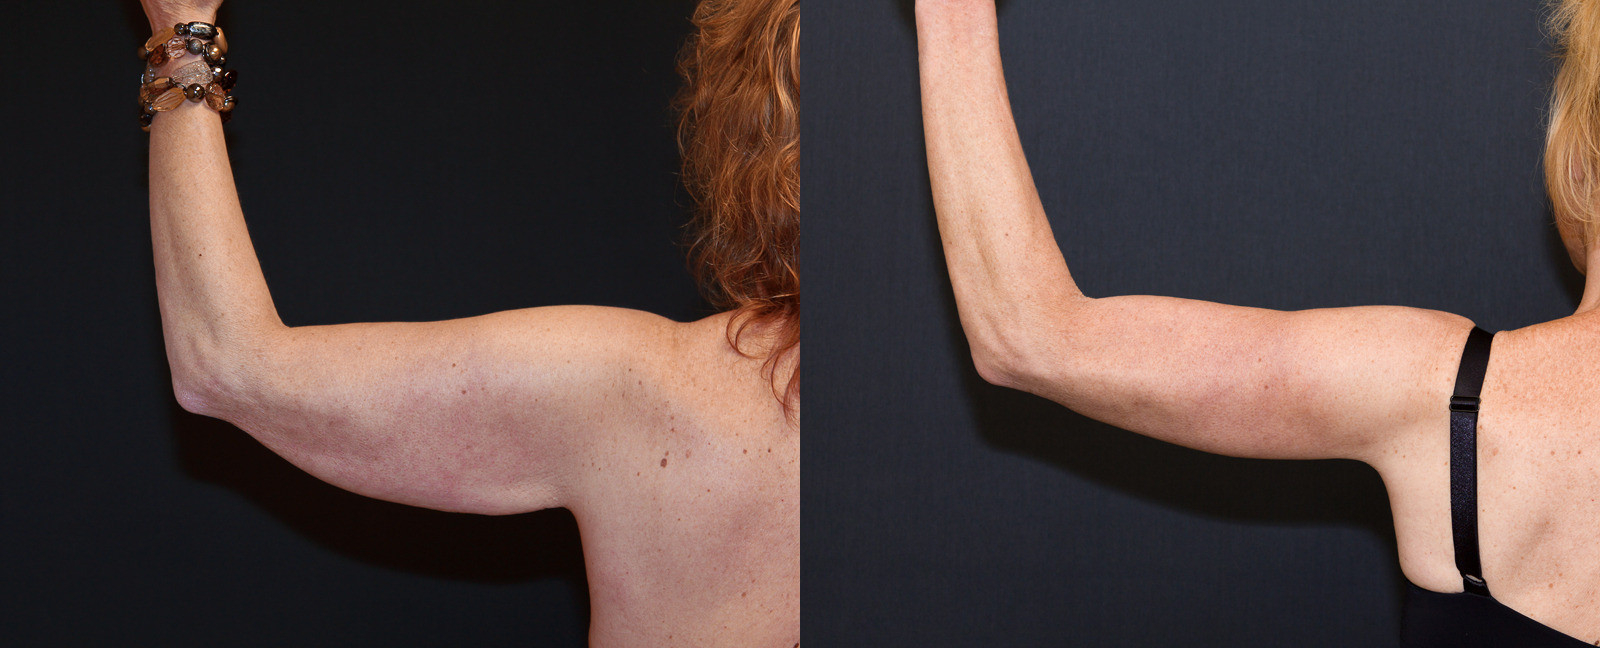 Post Weight Loss Surgery  Arm Lift After Weight Loss DeLuca Plastic Surgery